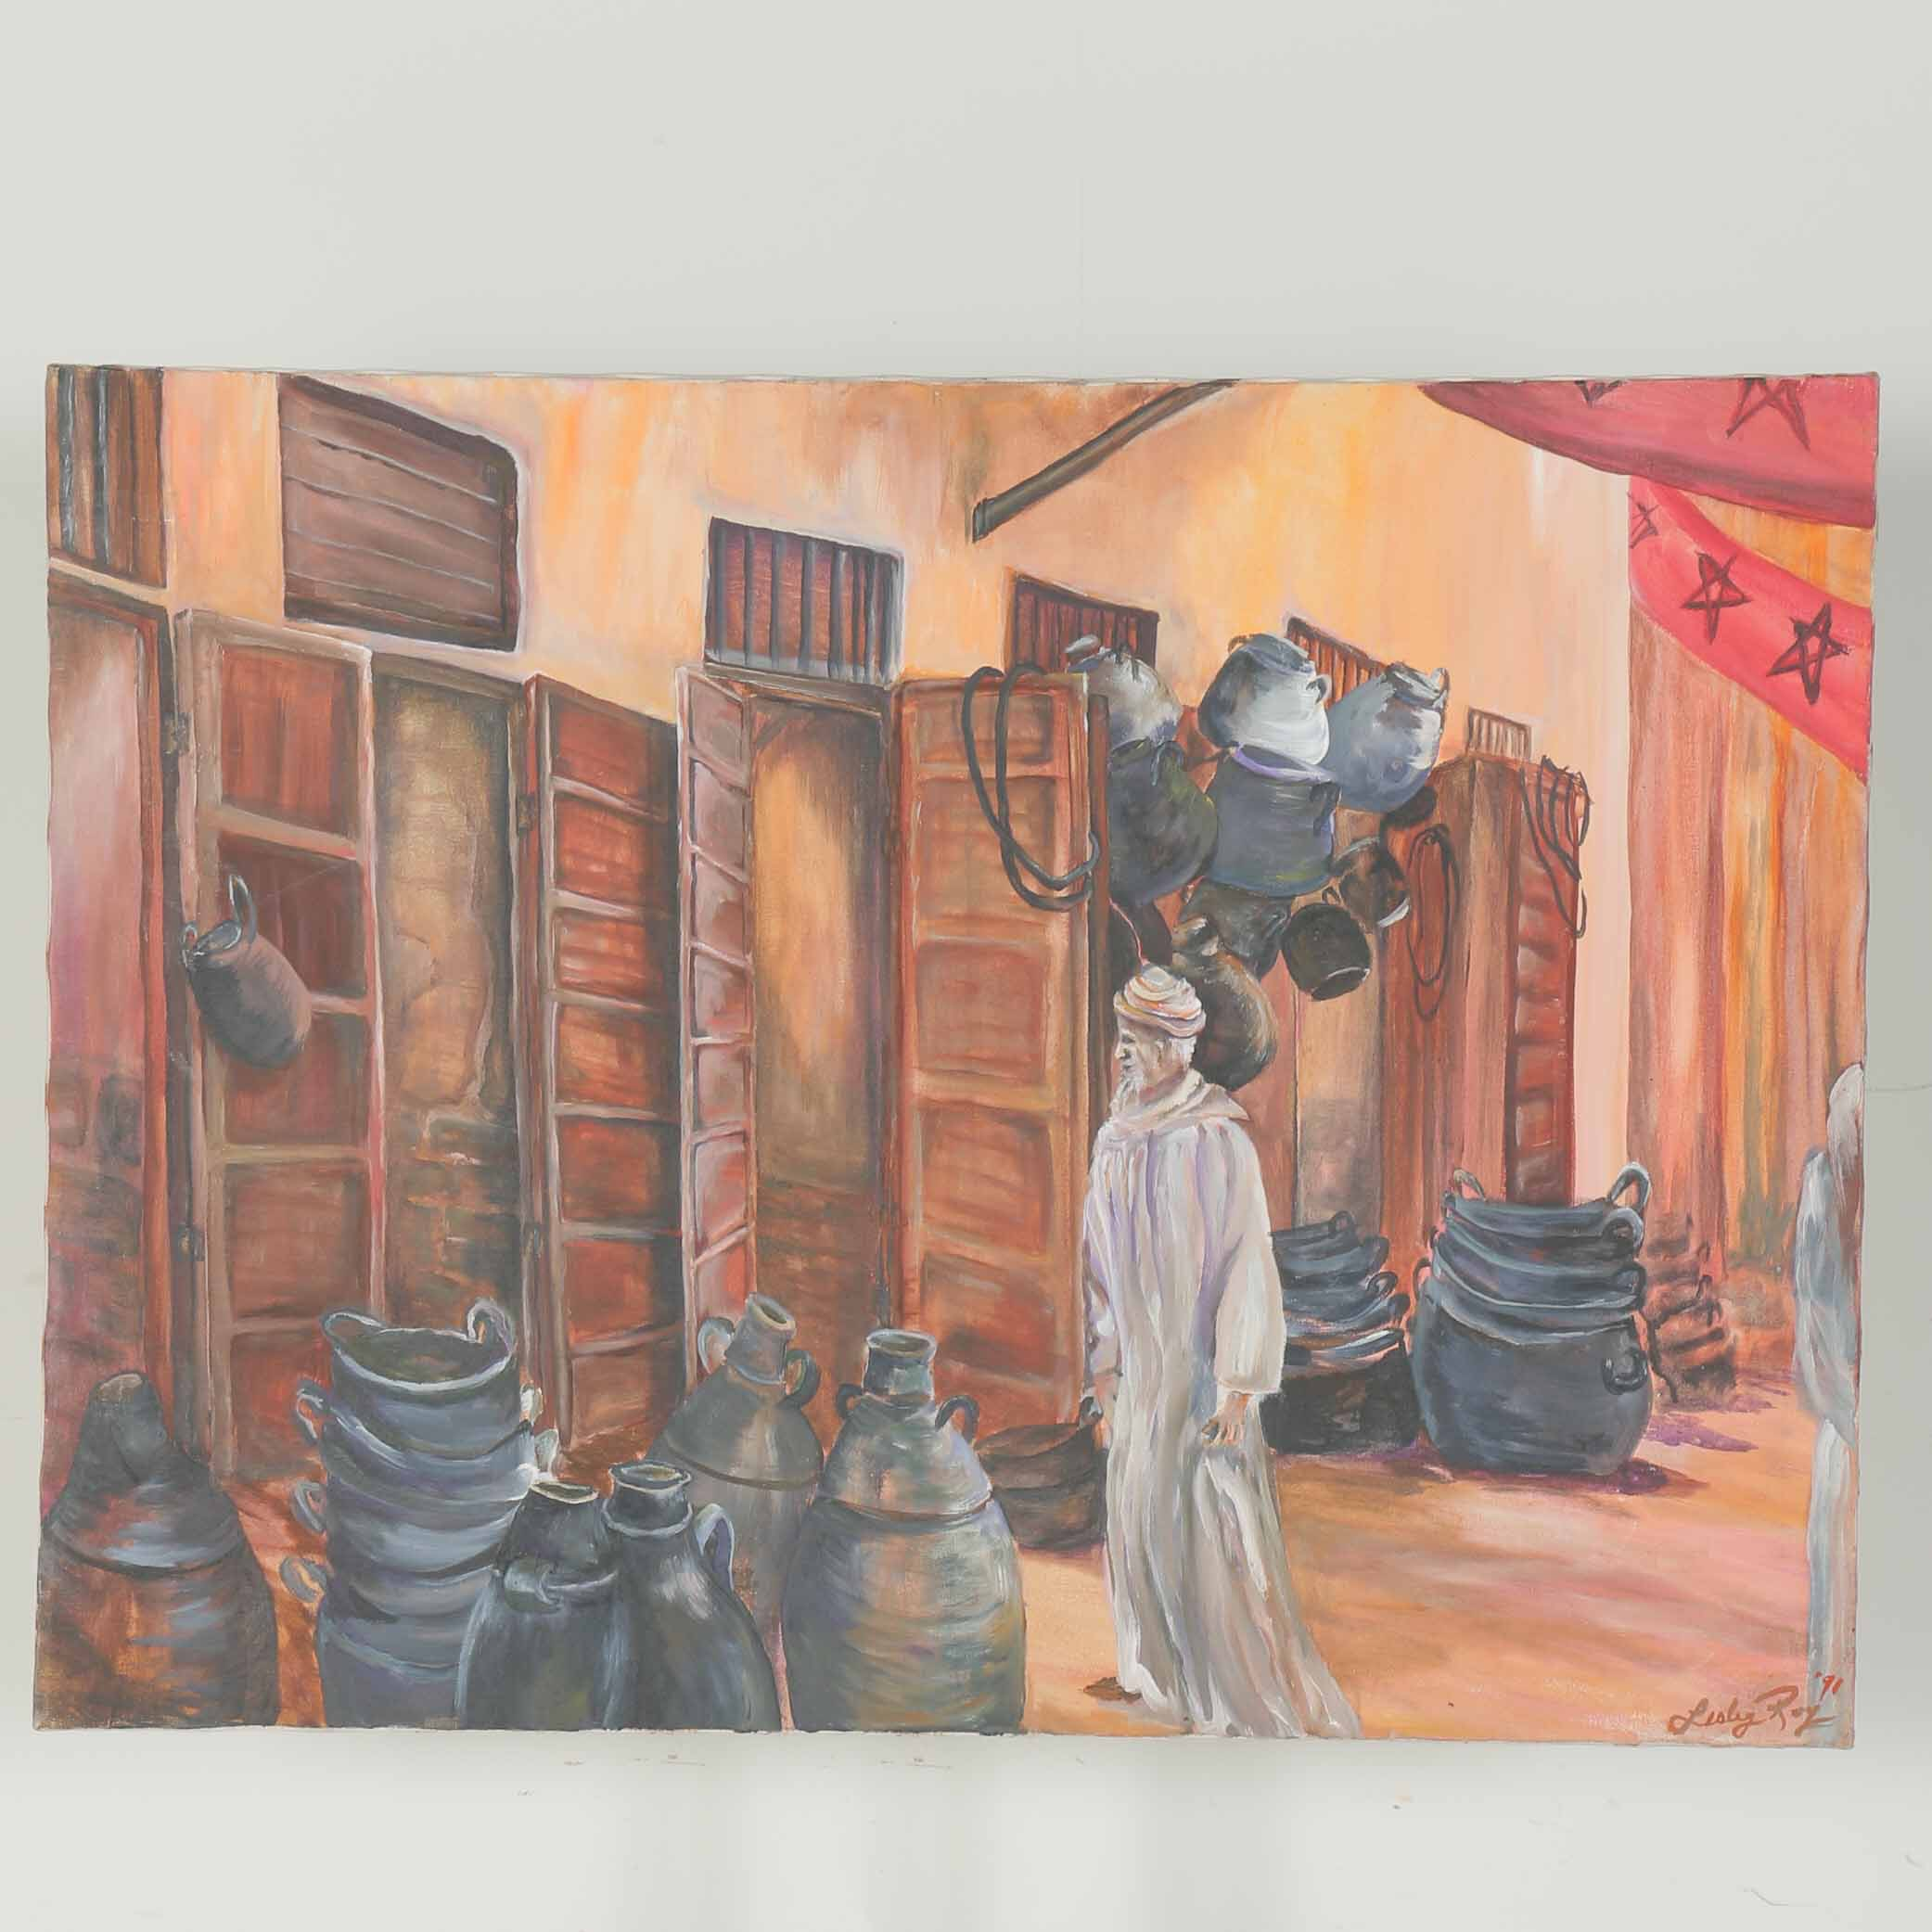 Lesley Roy Original Oil Painting on Canvas of a Man on a Street